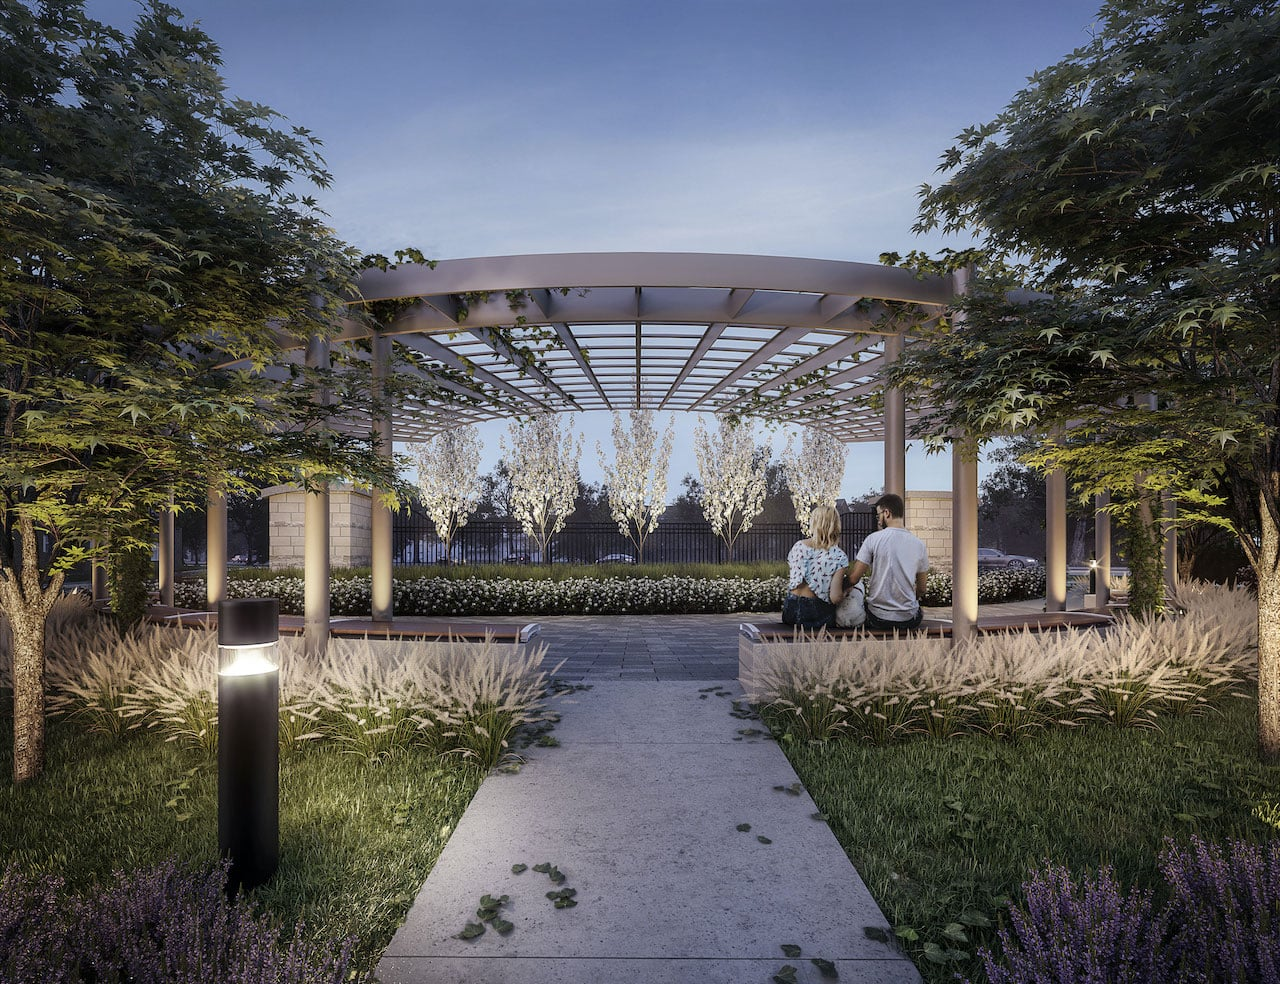 Rendering of Glenway Urban Towns courtyard in the evening